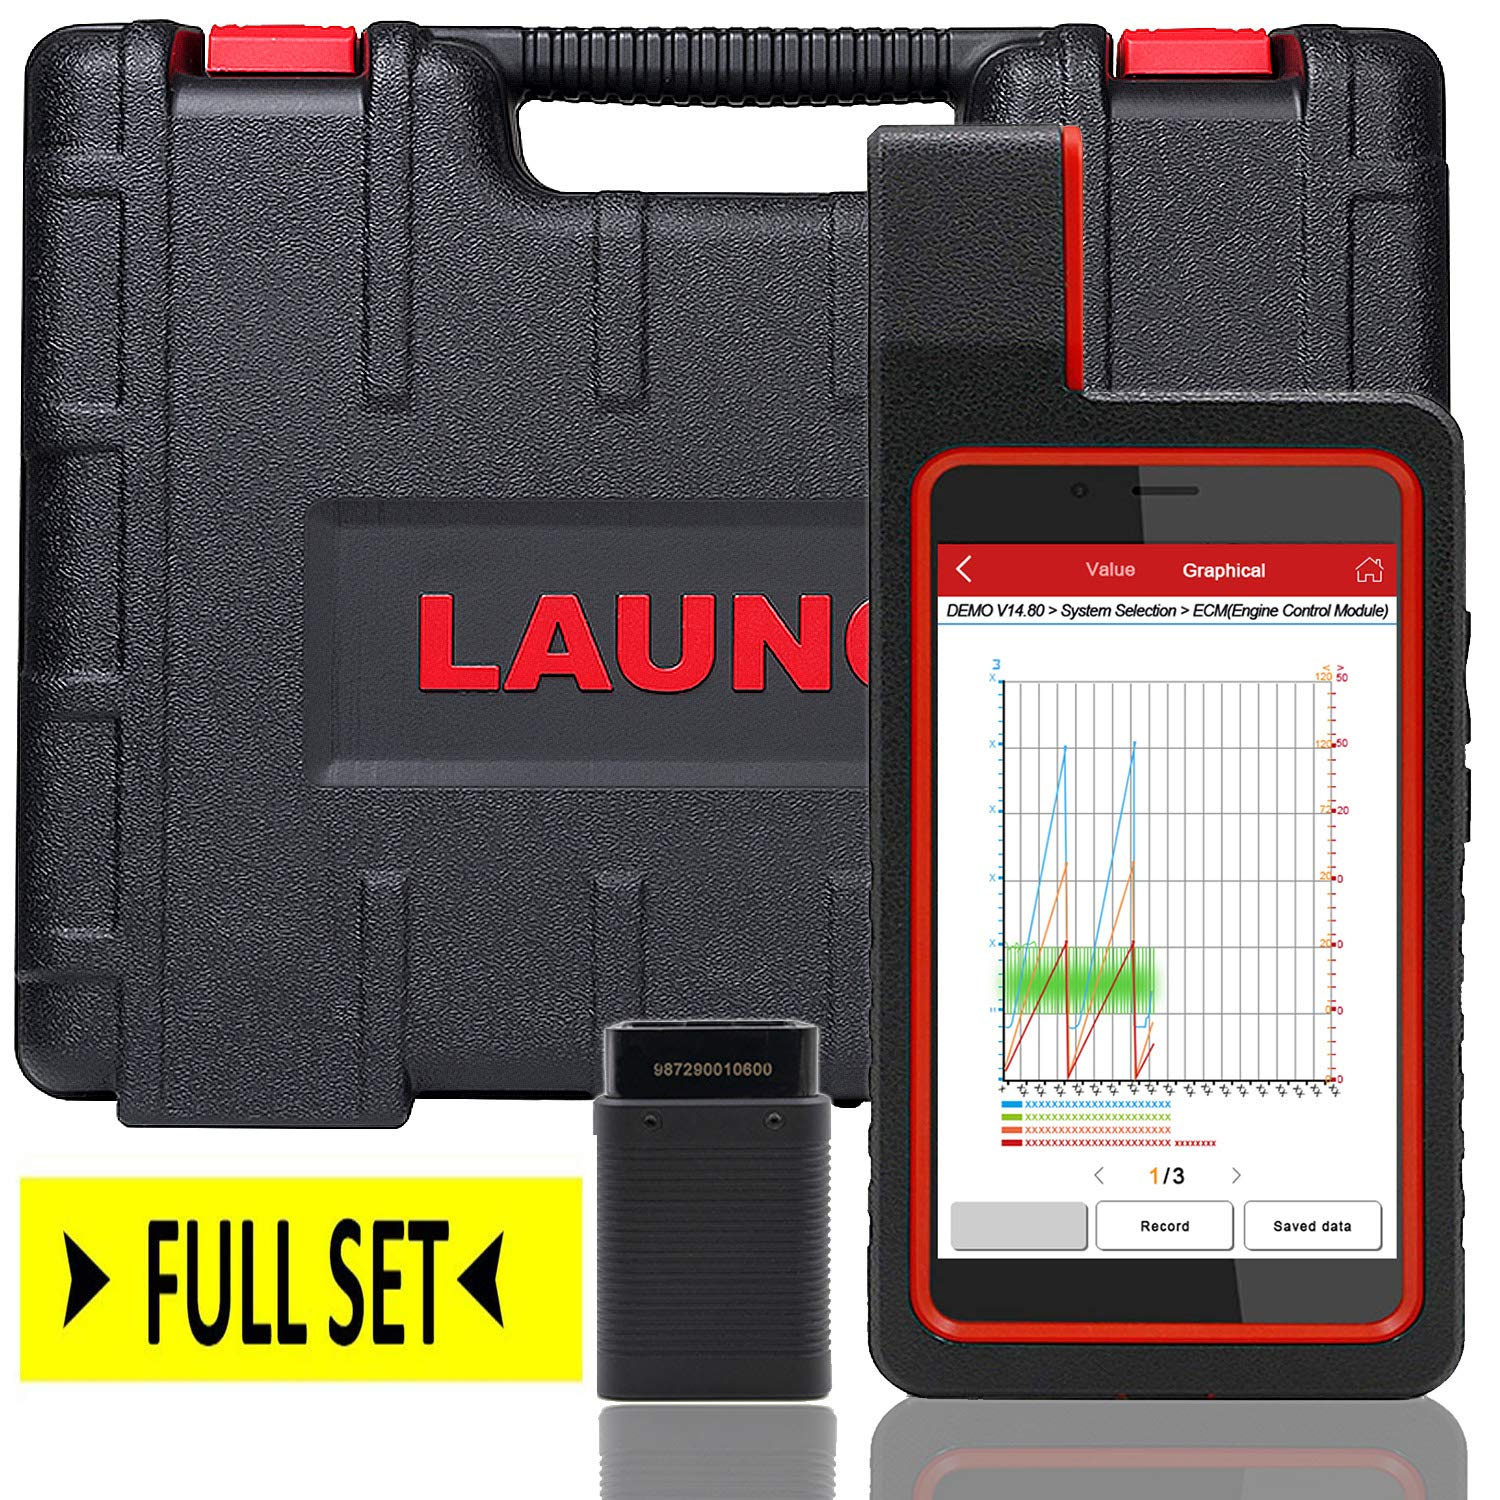 LAUNCH X431 DIAGUN IV WiFi/Bluetooth OBD2 Scanner Auto Full System Diagnostic Tool Support ECU Coding,Actuation Test,Remote Diagnostic 11 Reset Functions Diagnostic Report - Free Update 2 Years